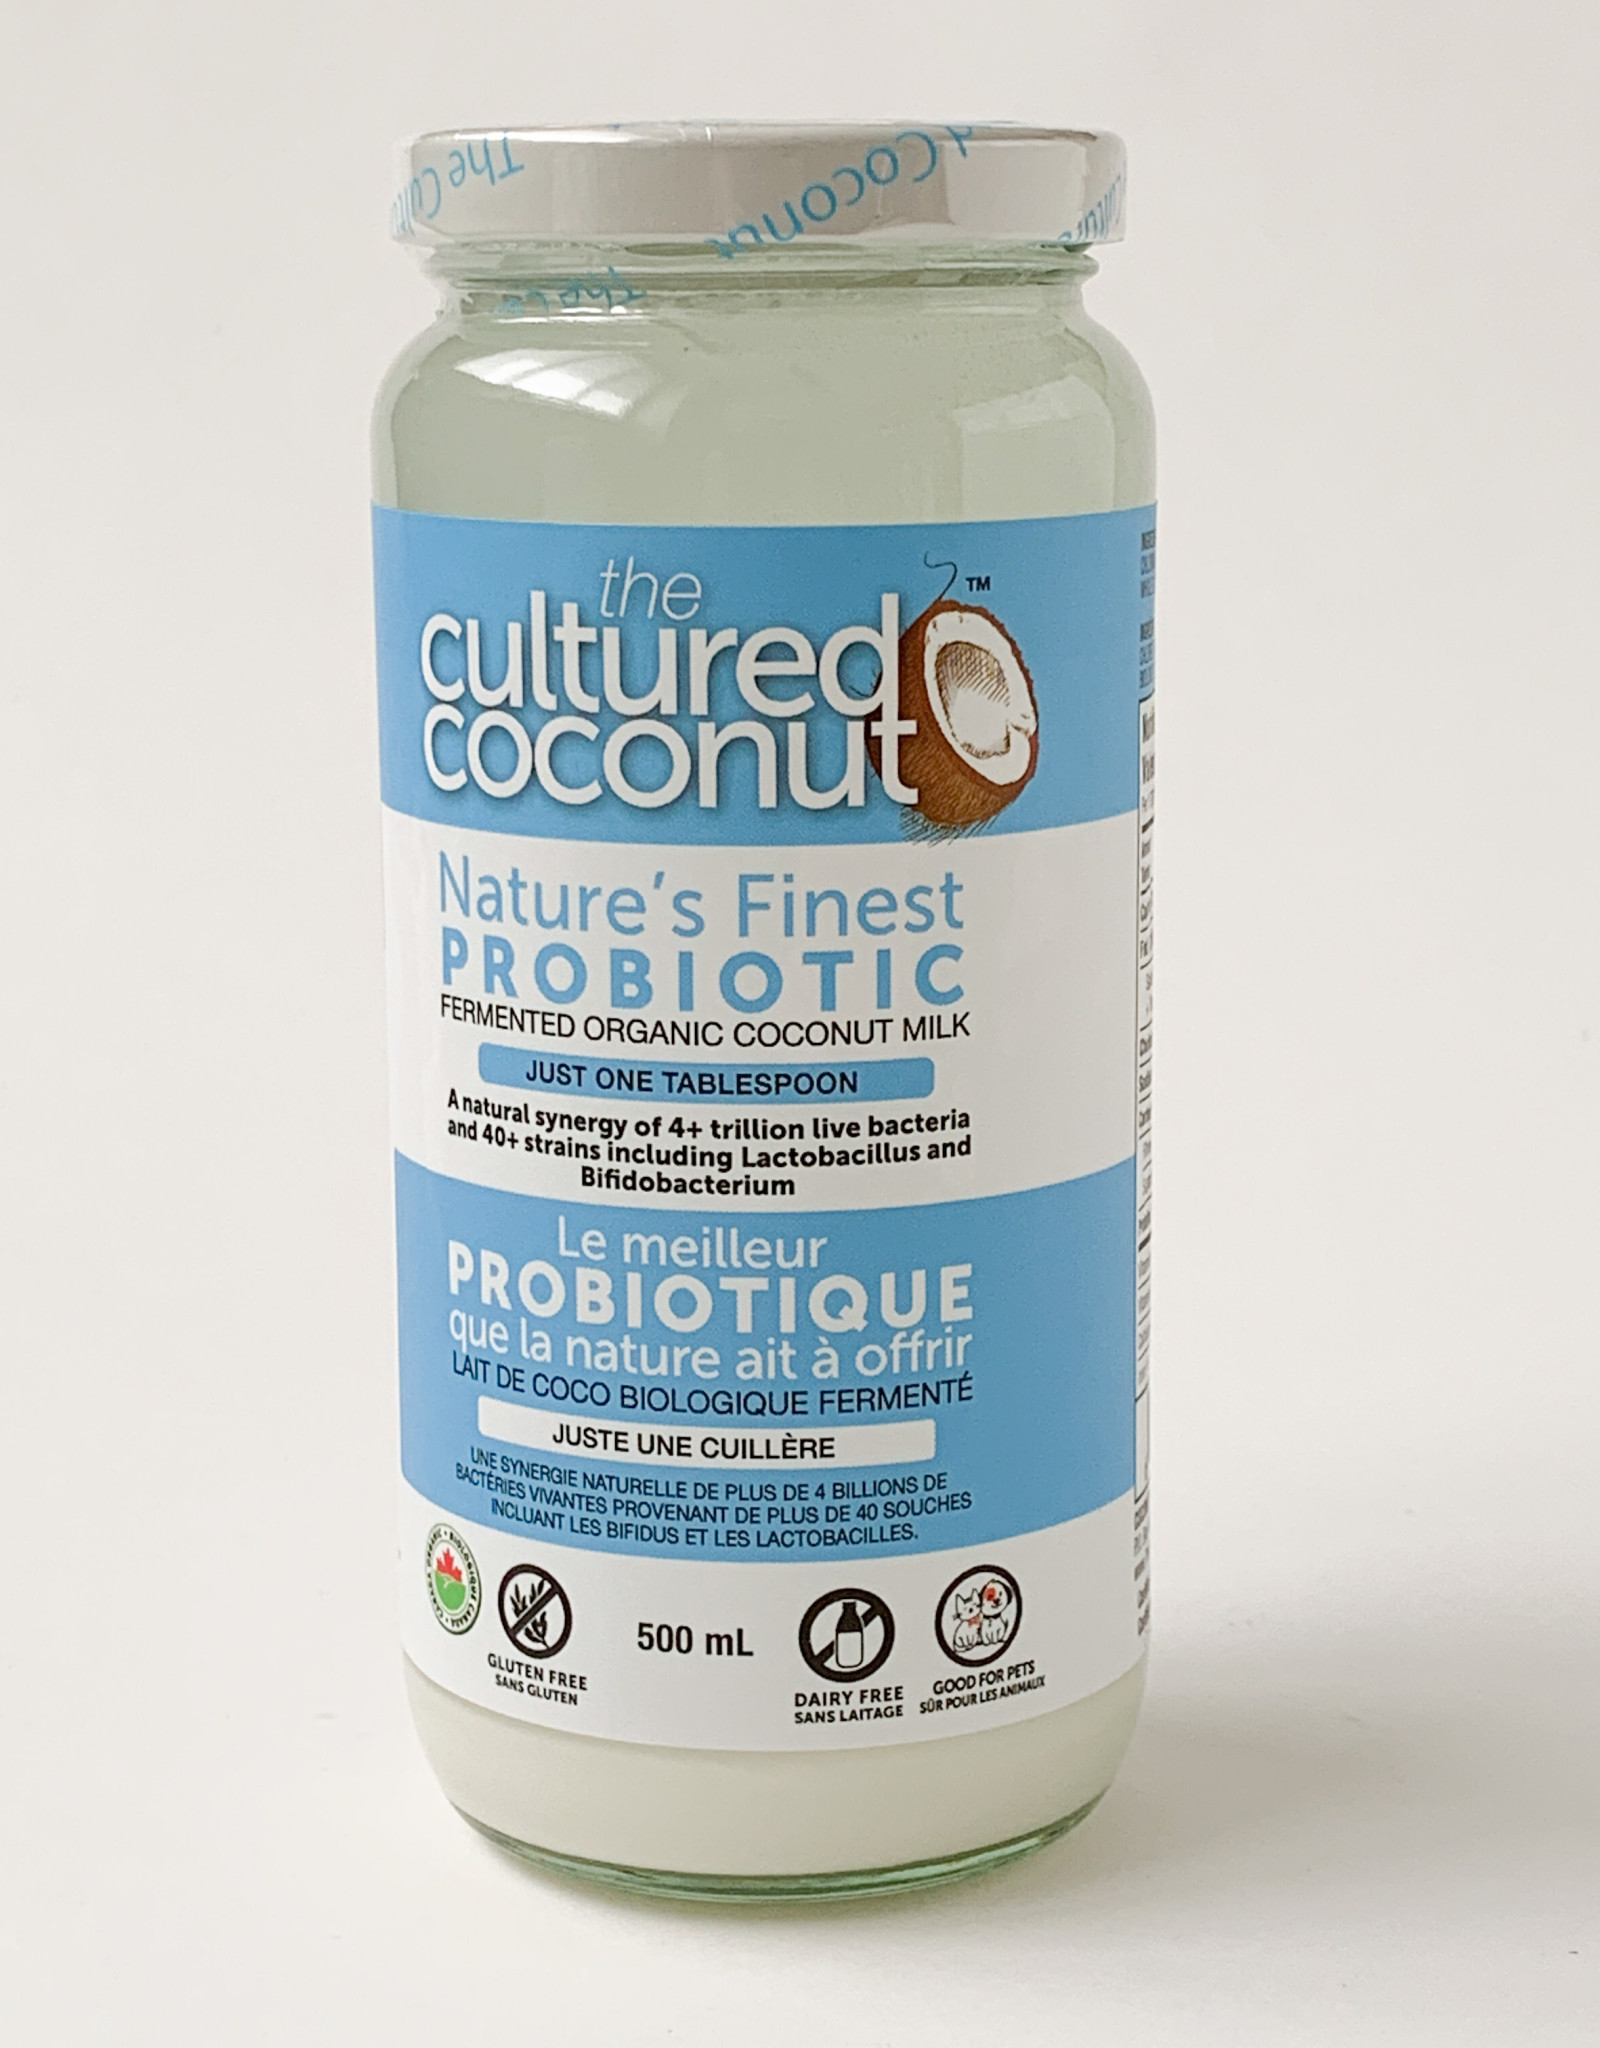 The Cultured Coconut Cultured Coconut Kefir